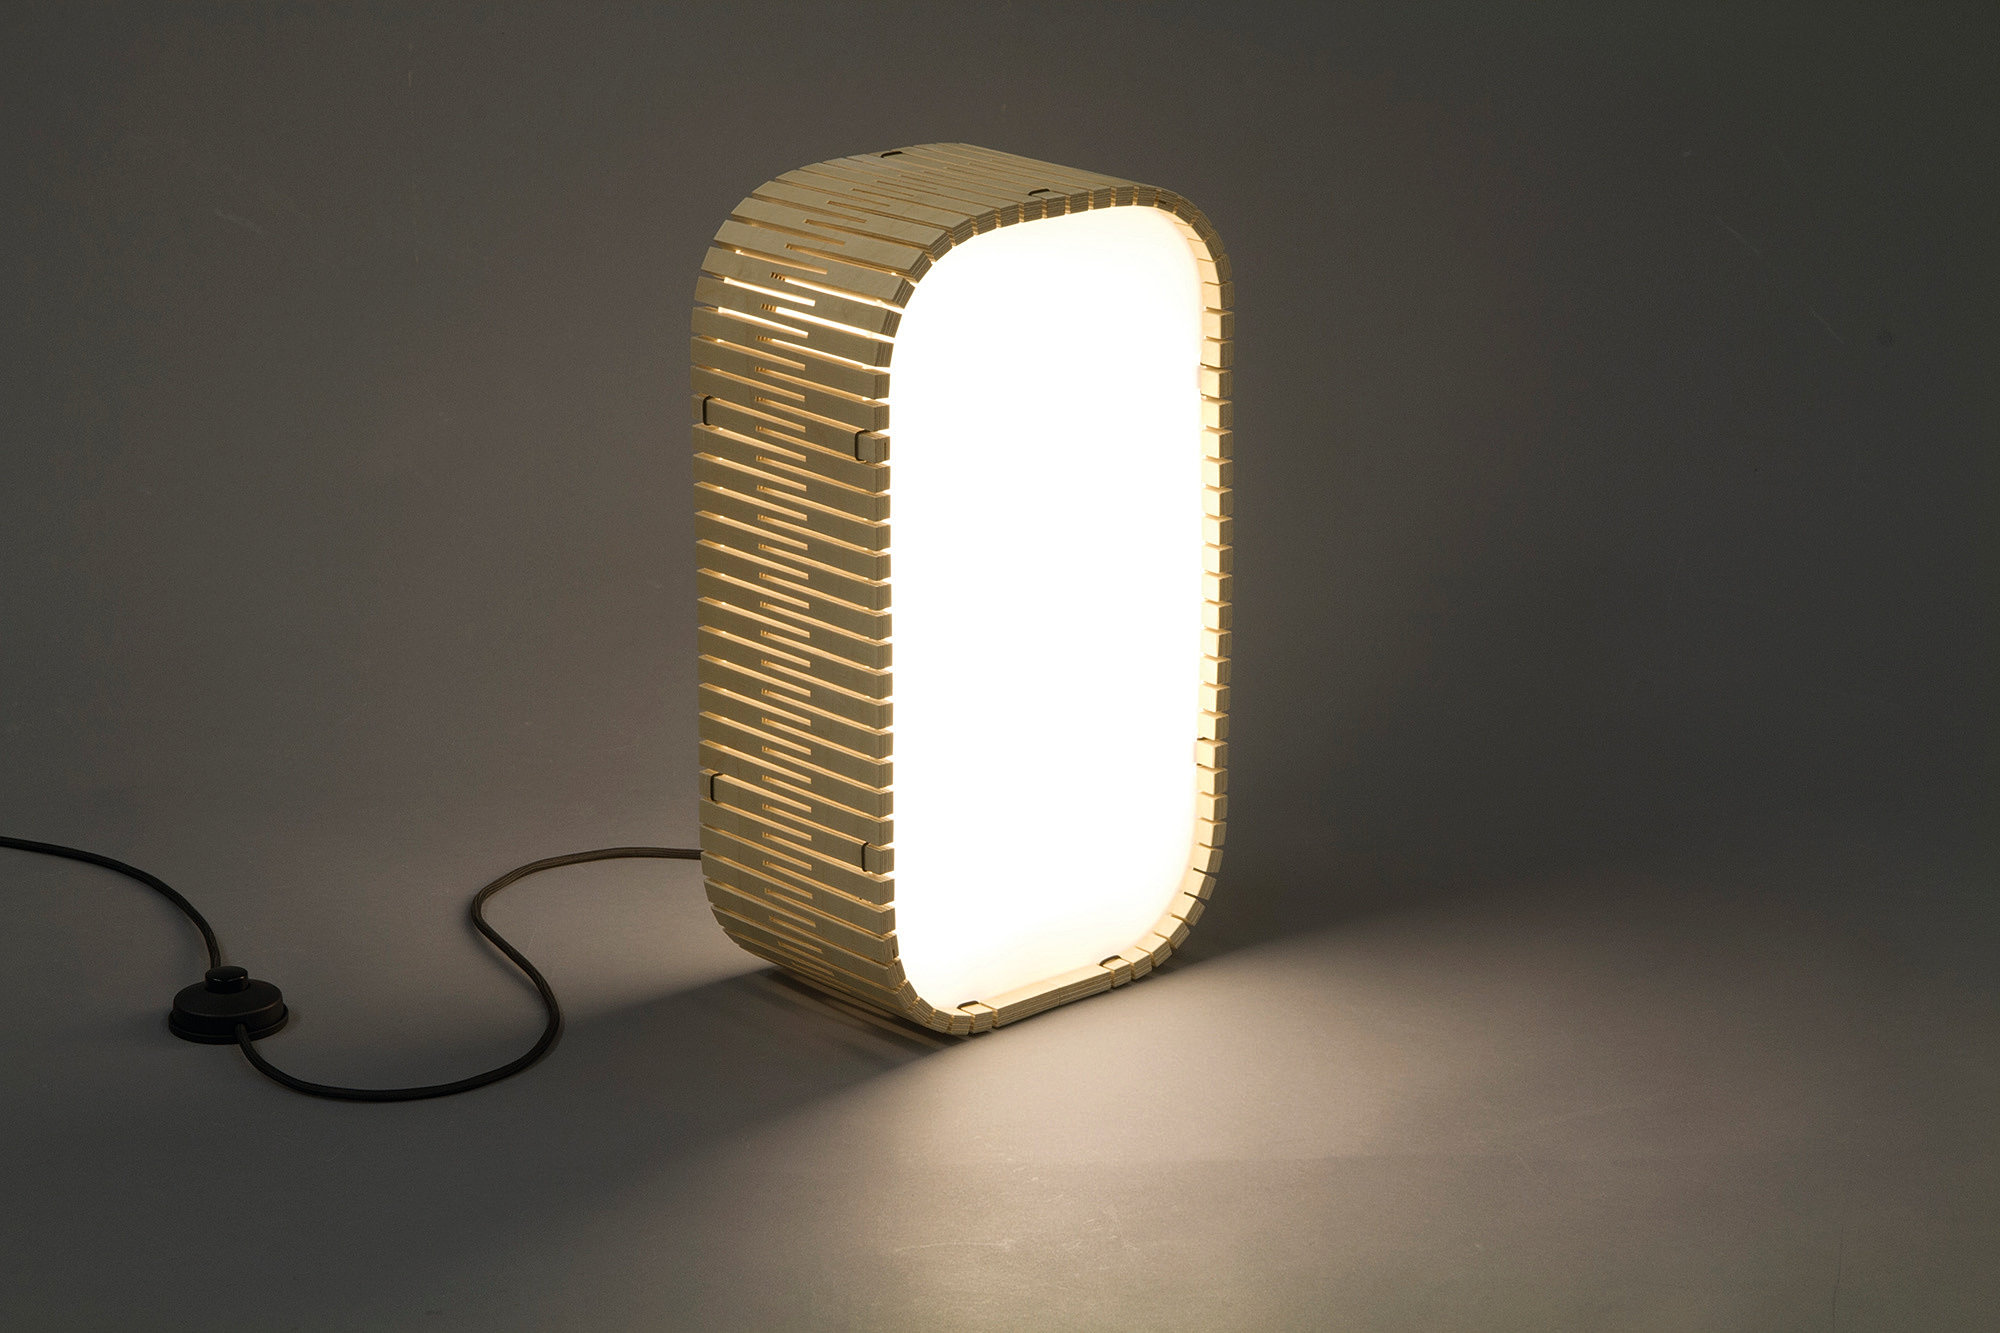 Dukta Flexible Wood Motion By Gommans Dukta Lamp